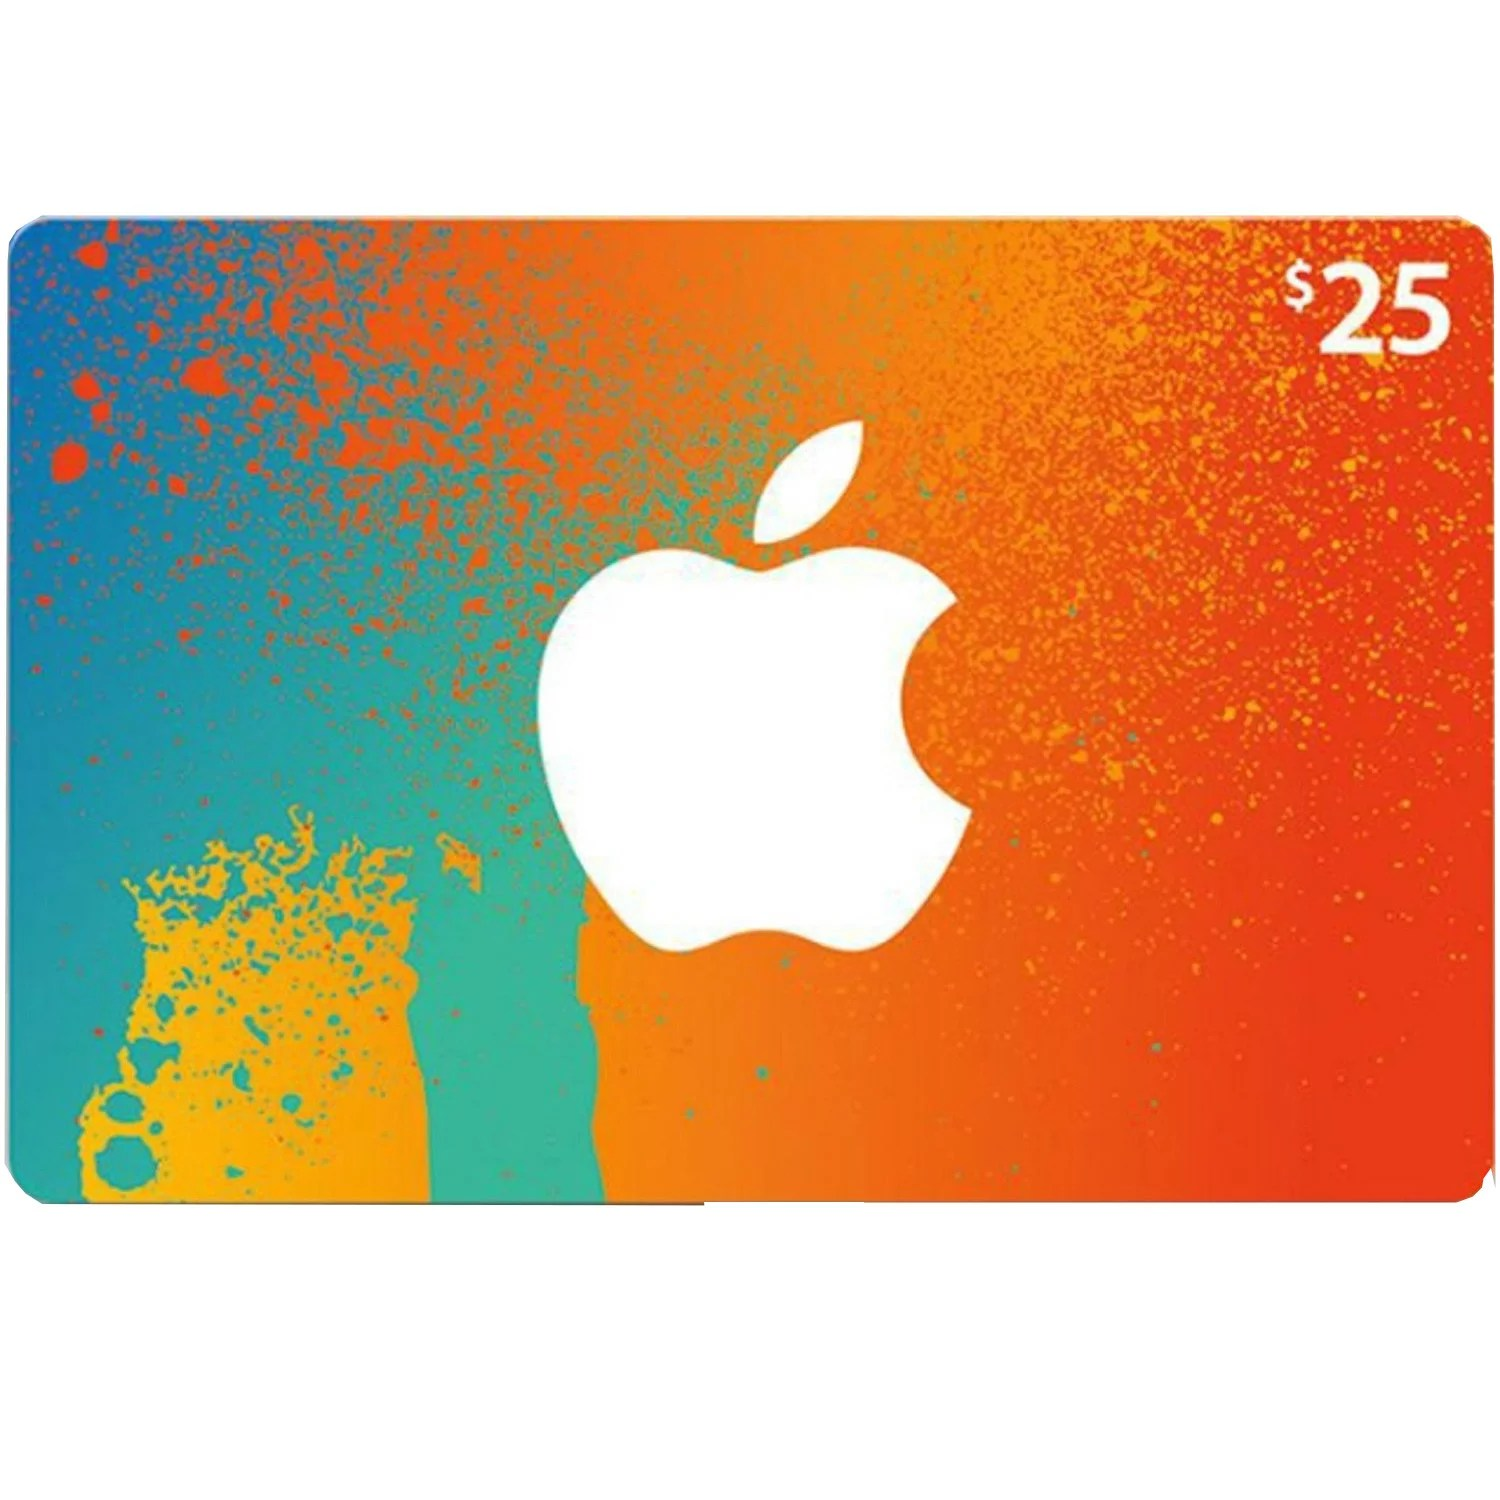 Itune Gift Card Gift Ftempo